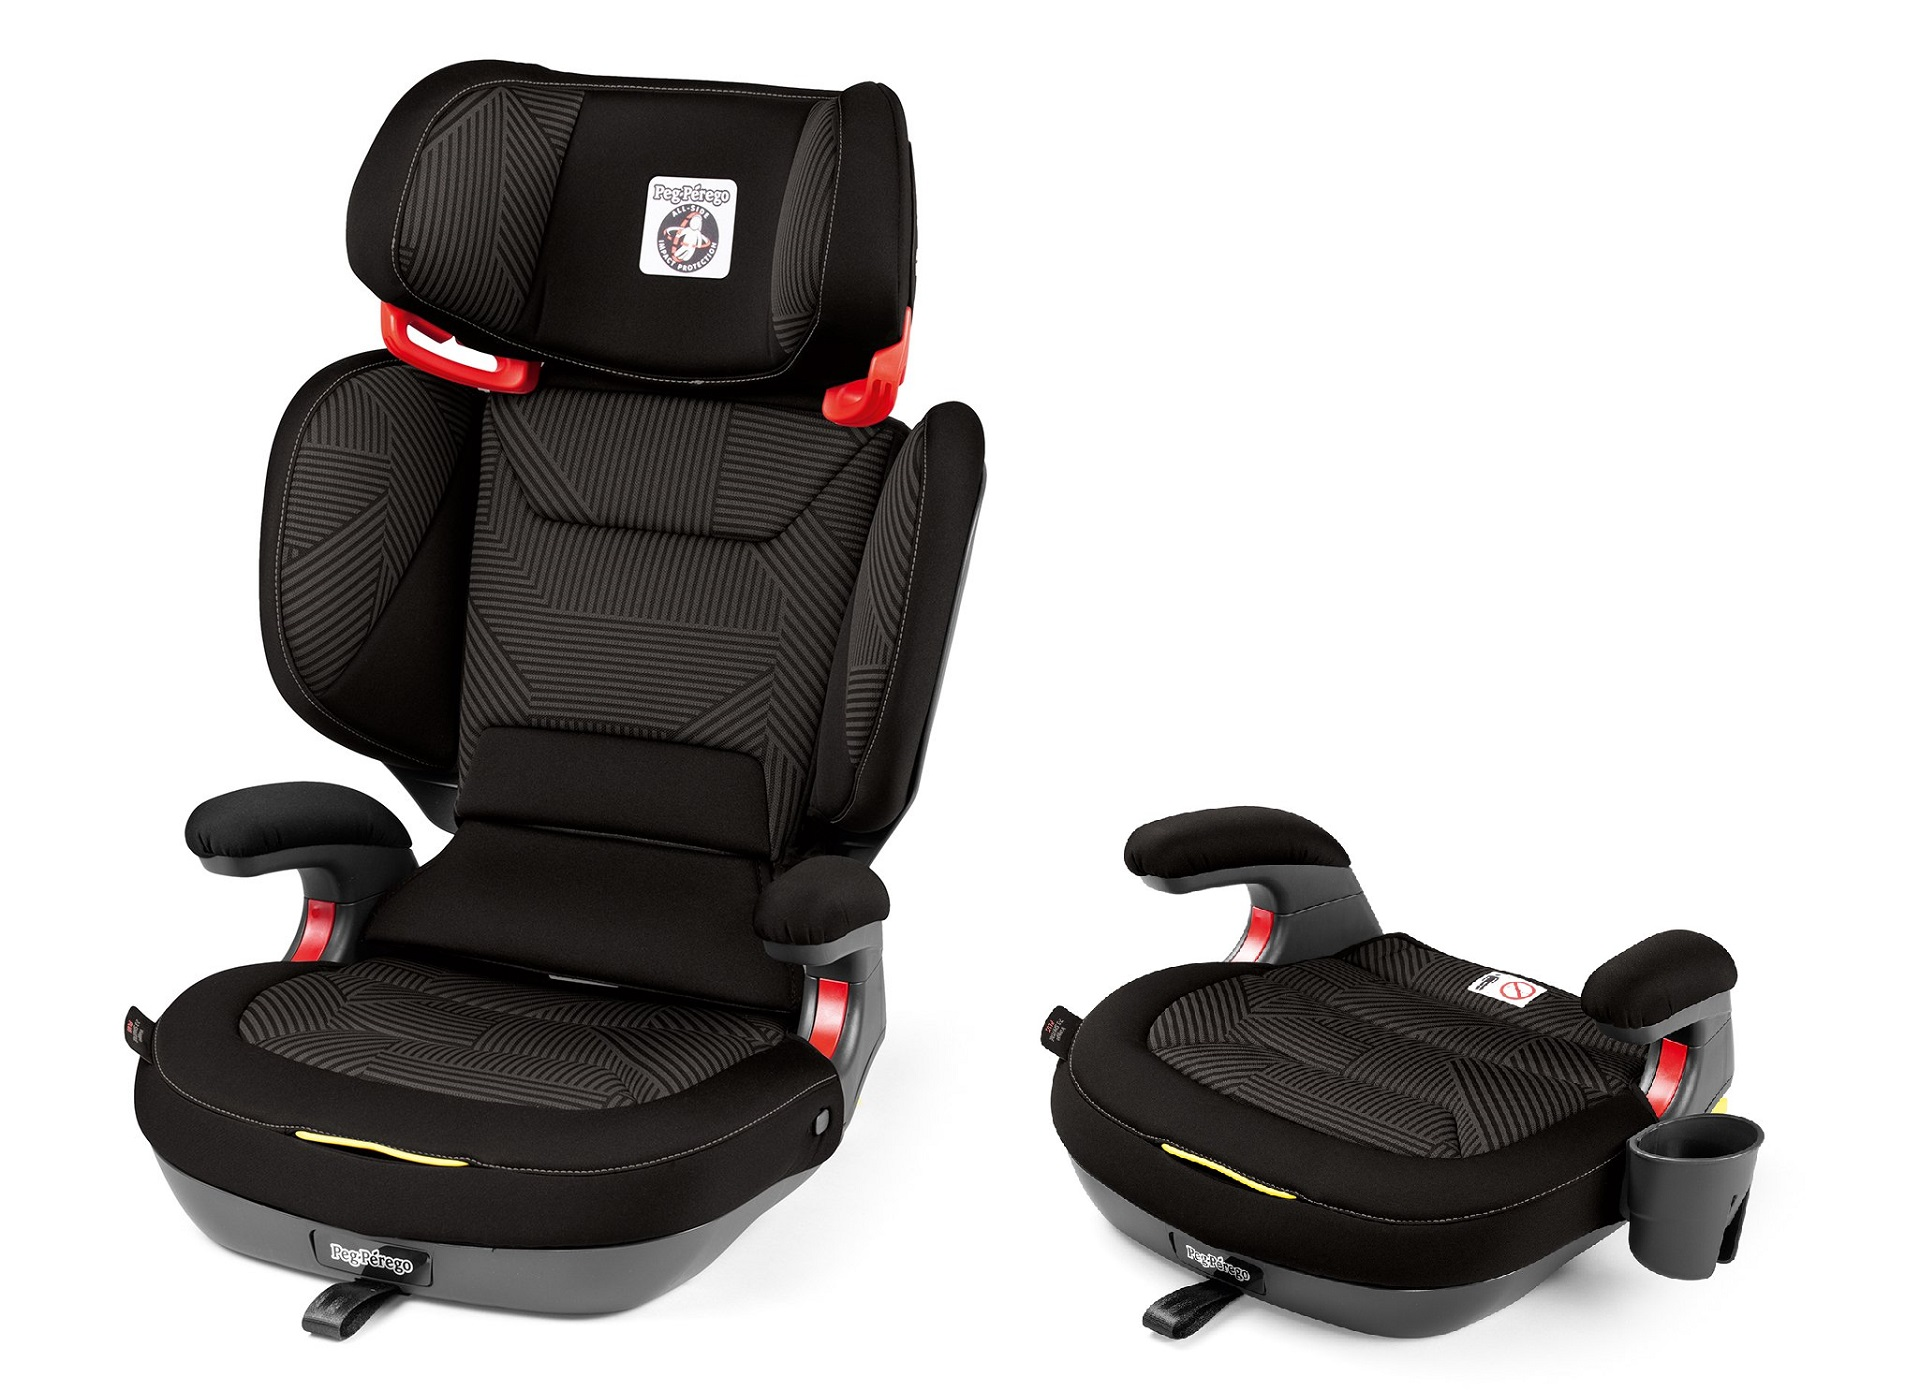 Image result for booster seat